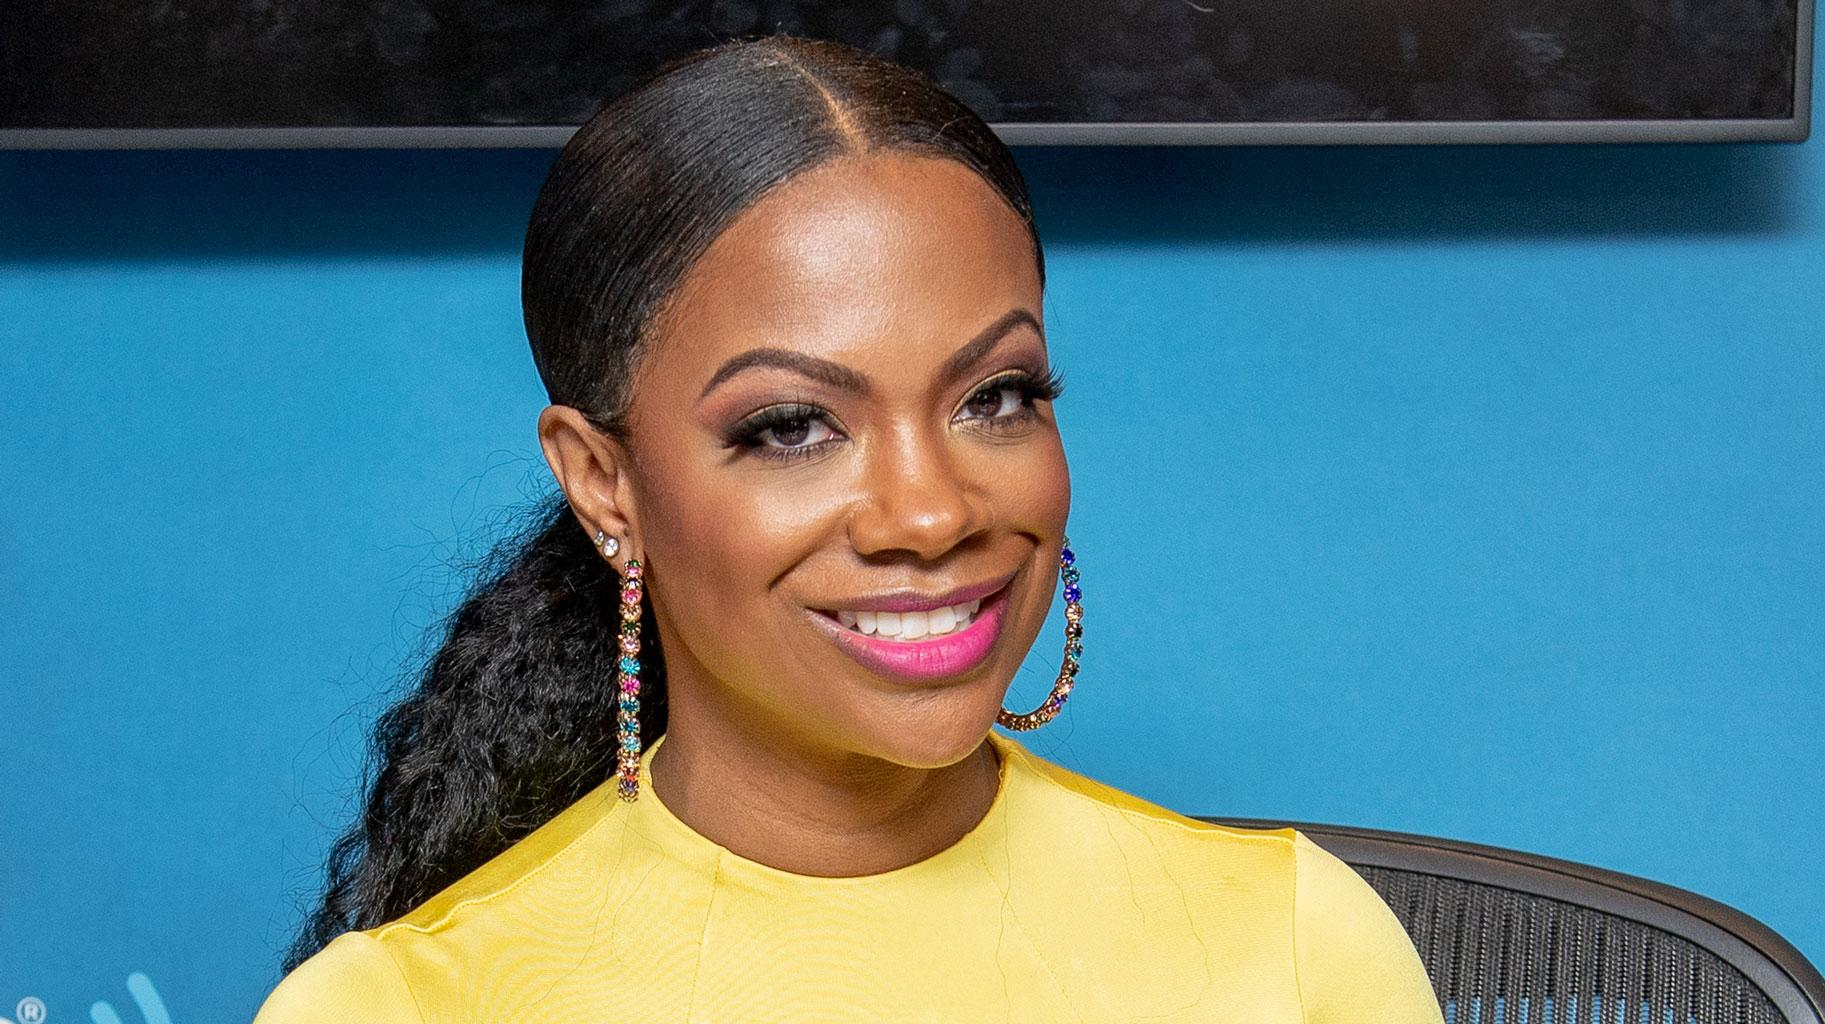 Kandi Burruss Gushes Over Her Pal, Keke With Her Latest Posts - She Invited Keke On Her Show Called 'Speak On It'